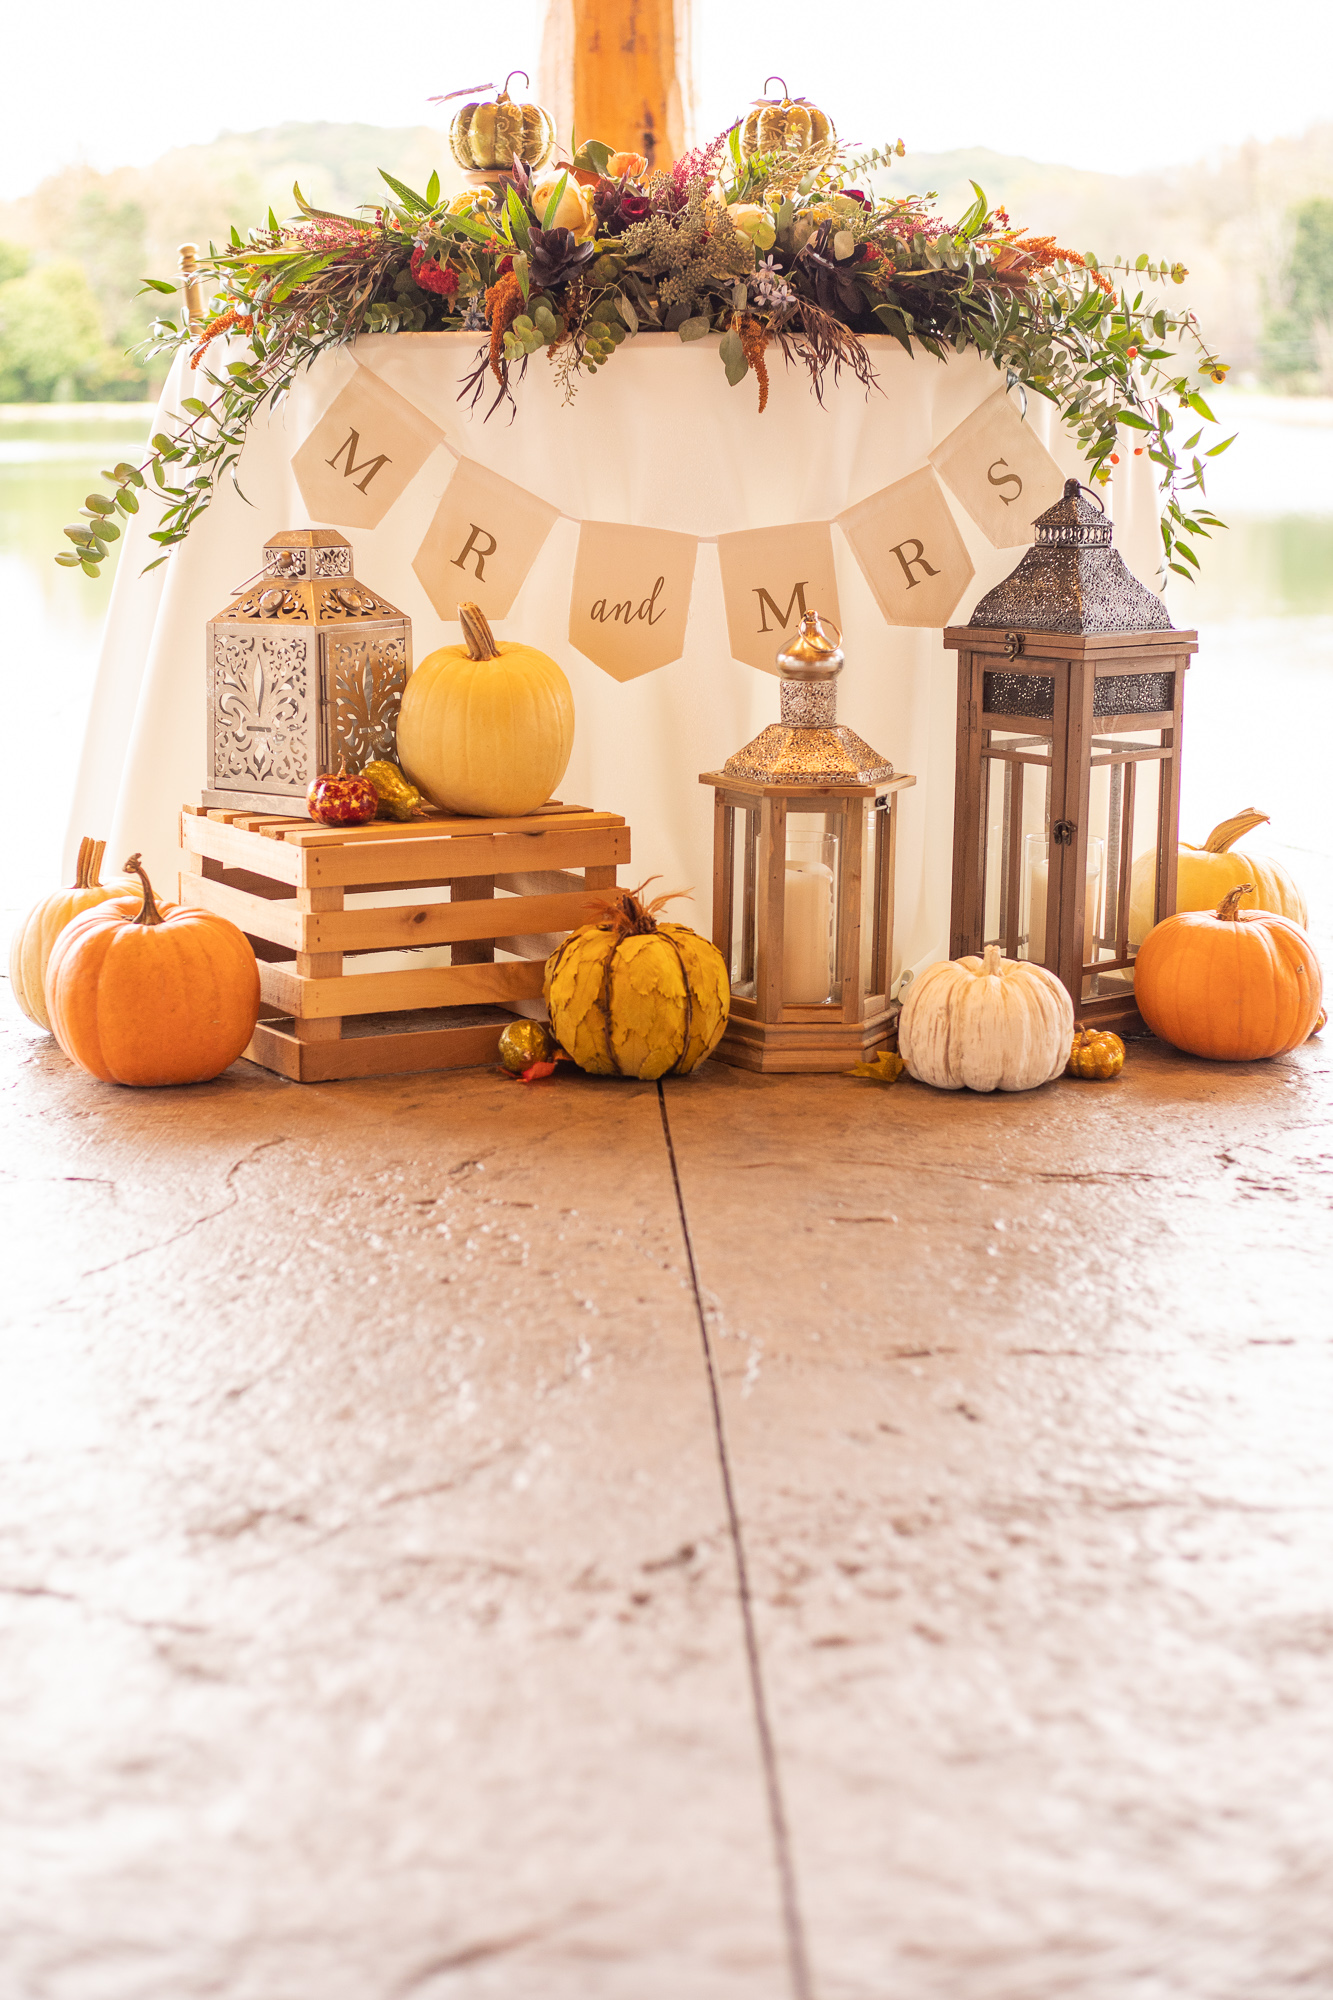 Autumn styled shoot sweetheart table by Events 143, Posies by Patti, and Chelsea Party Center